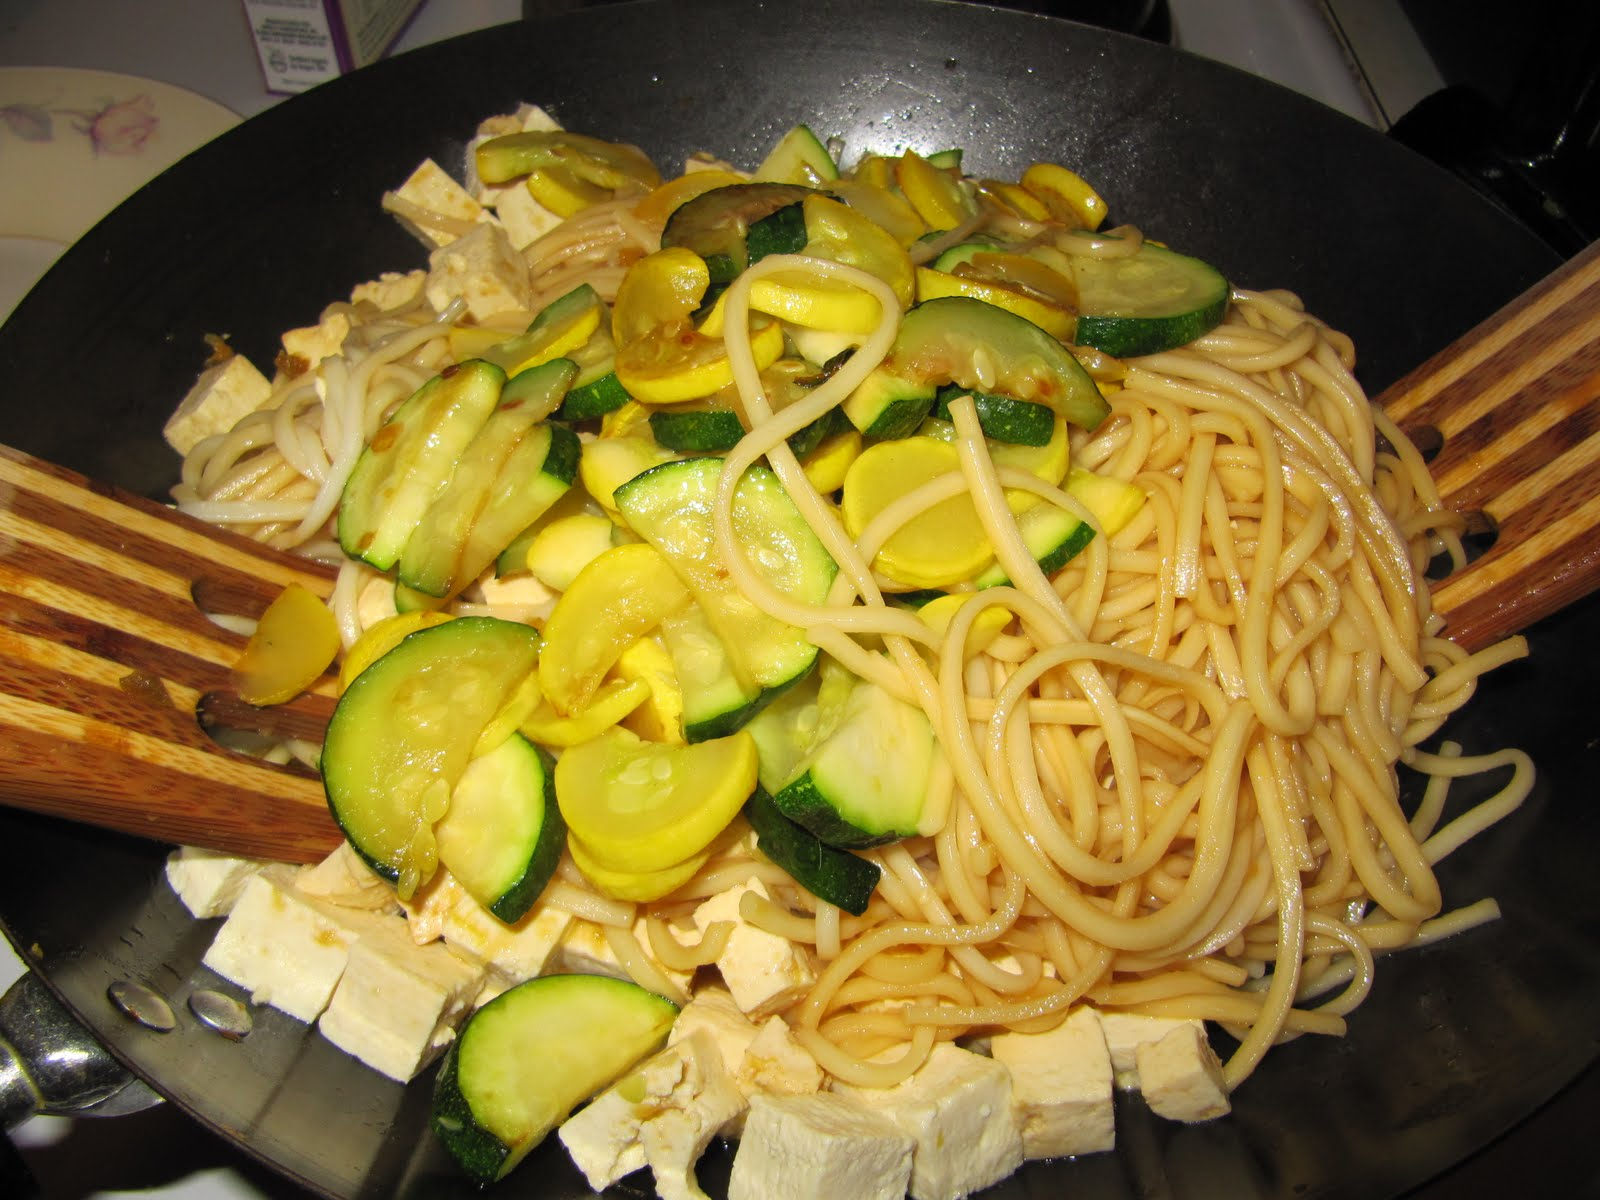 ... Gastronomy: Noodles with Sauteed Veggies and Lemon Ginger Dressing